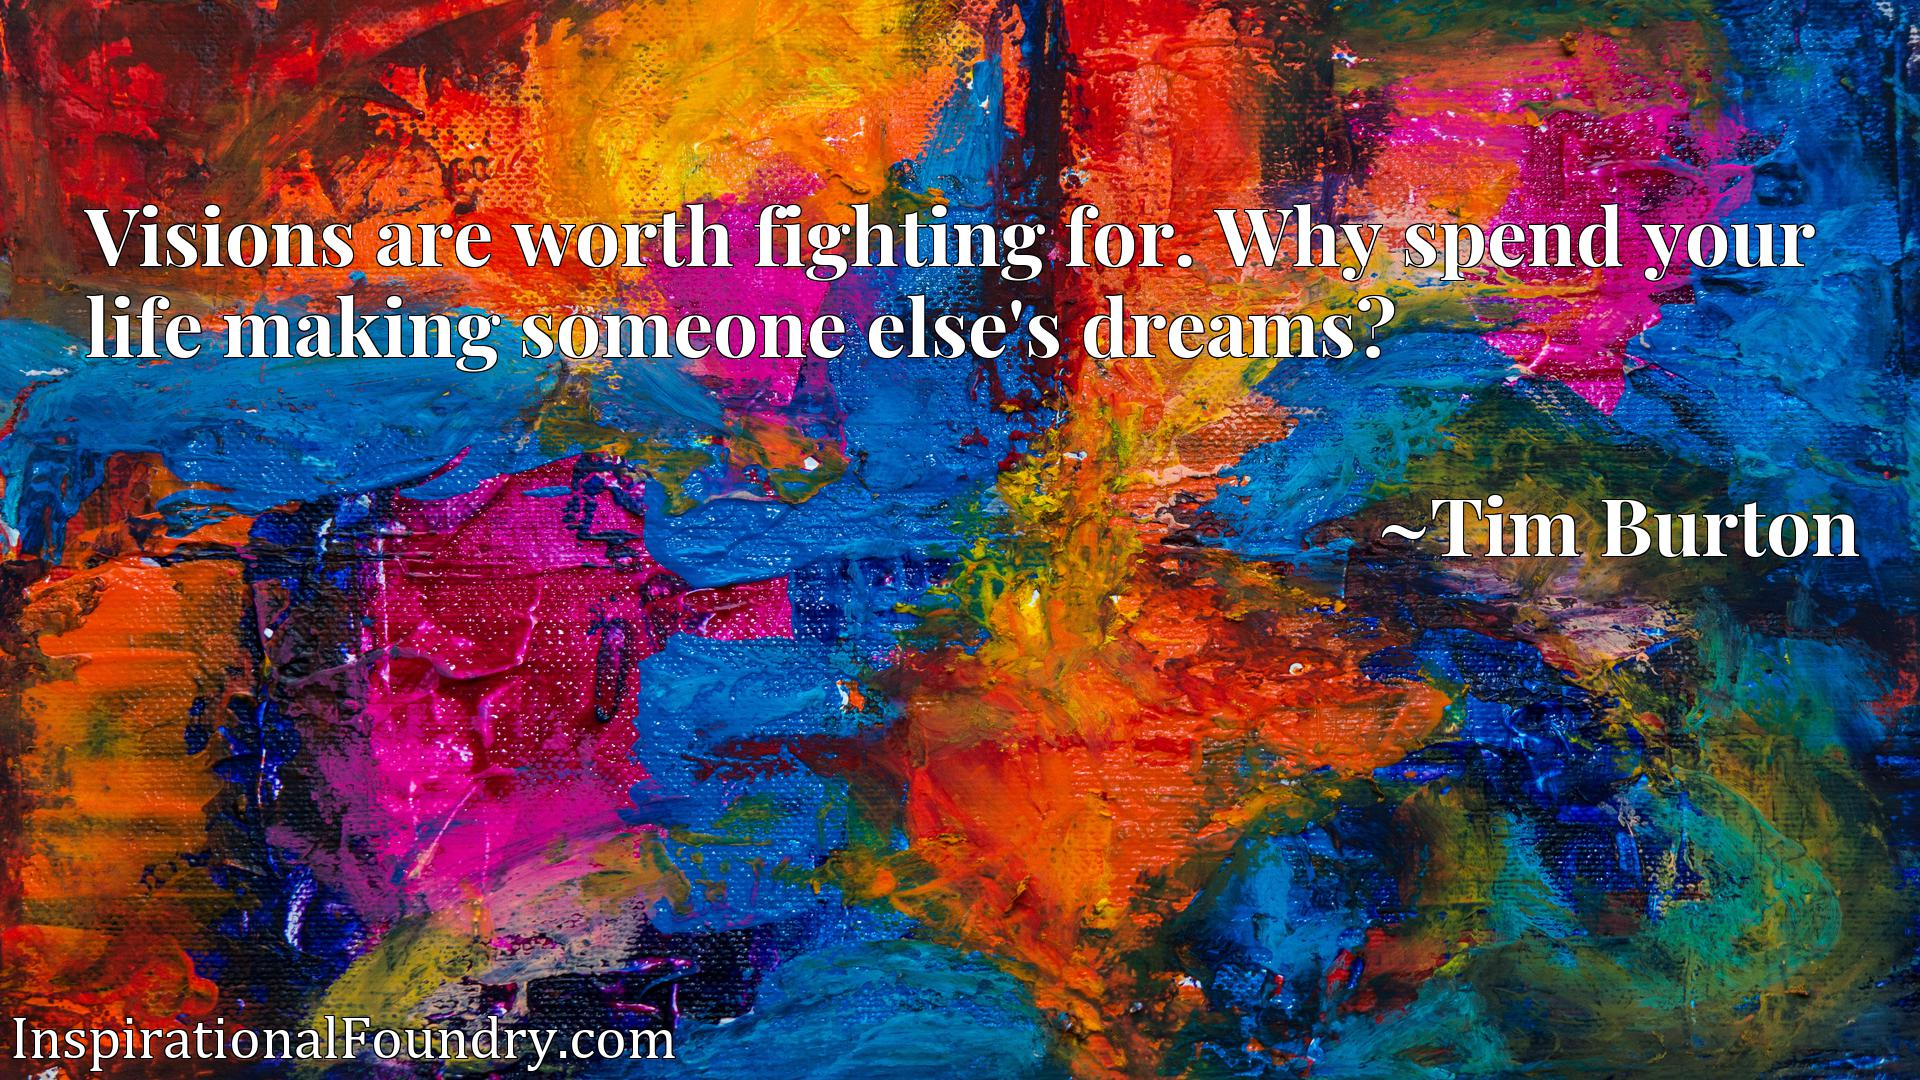 Visions are worth fighting for. Why spend your life making someone else's dreams?